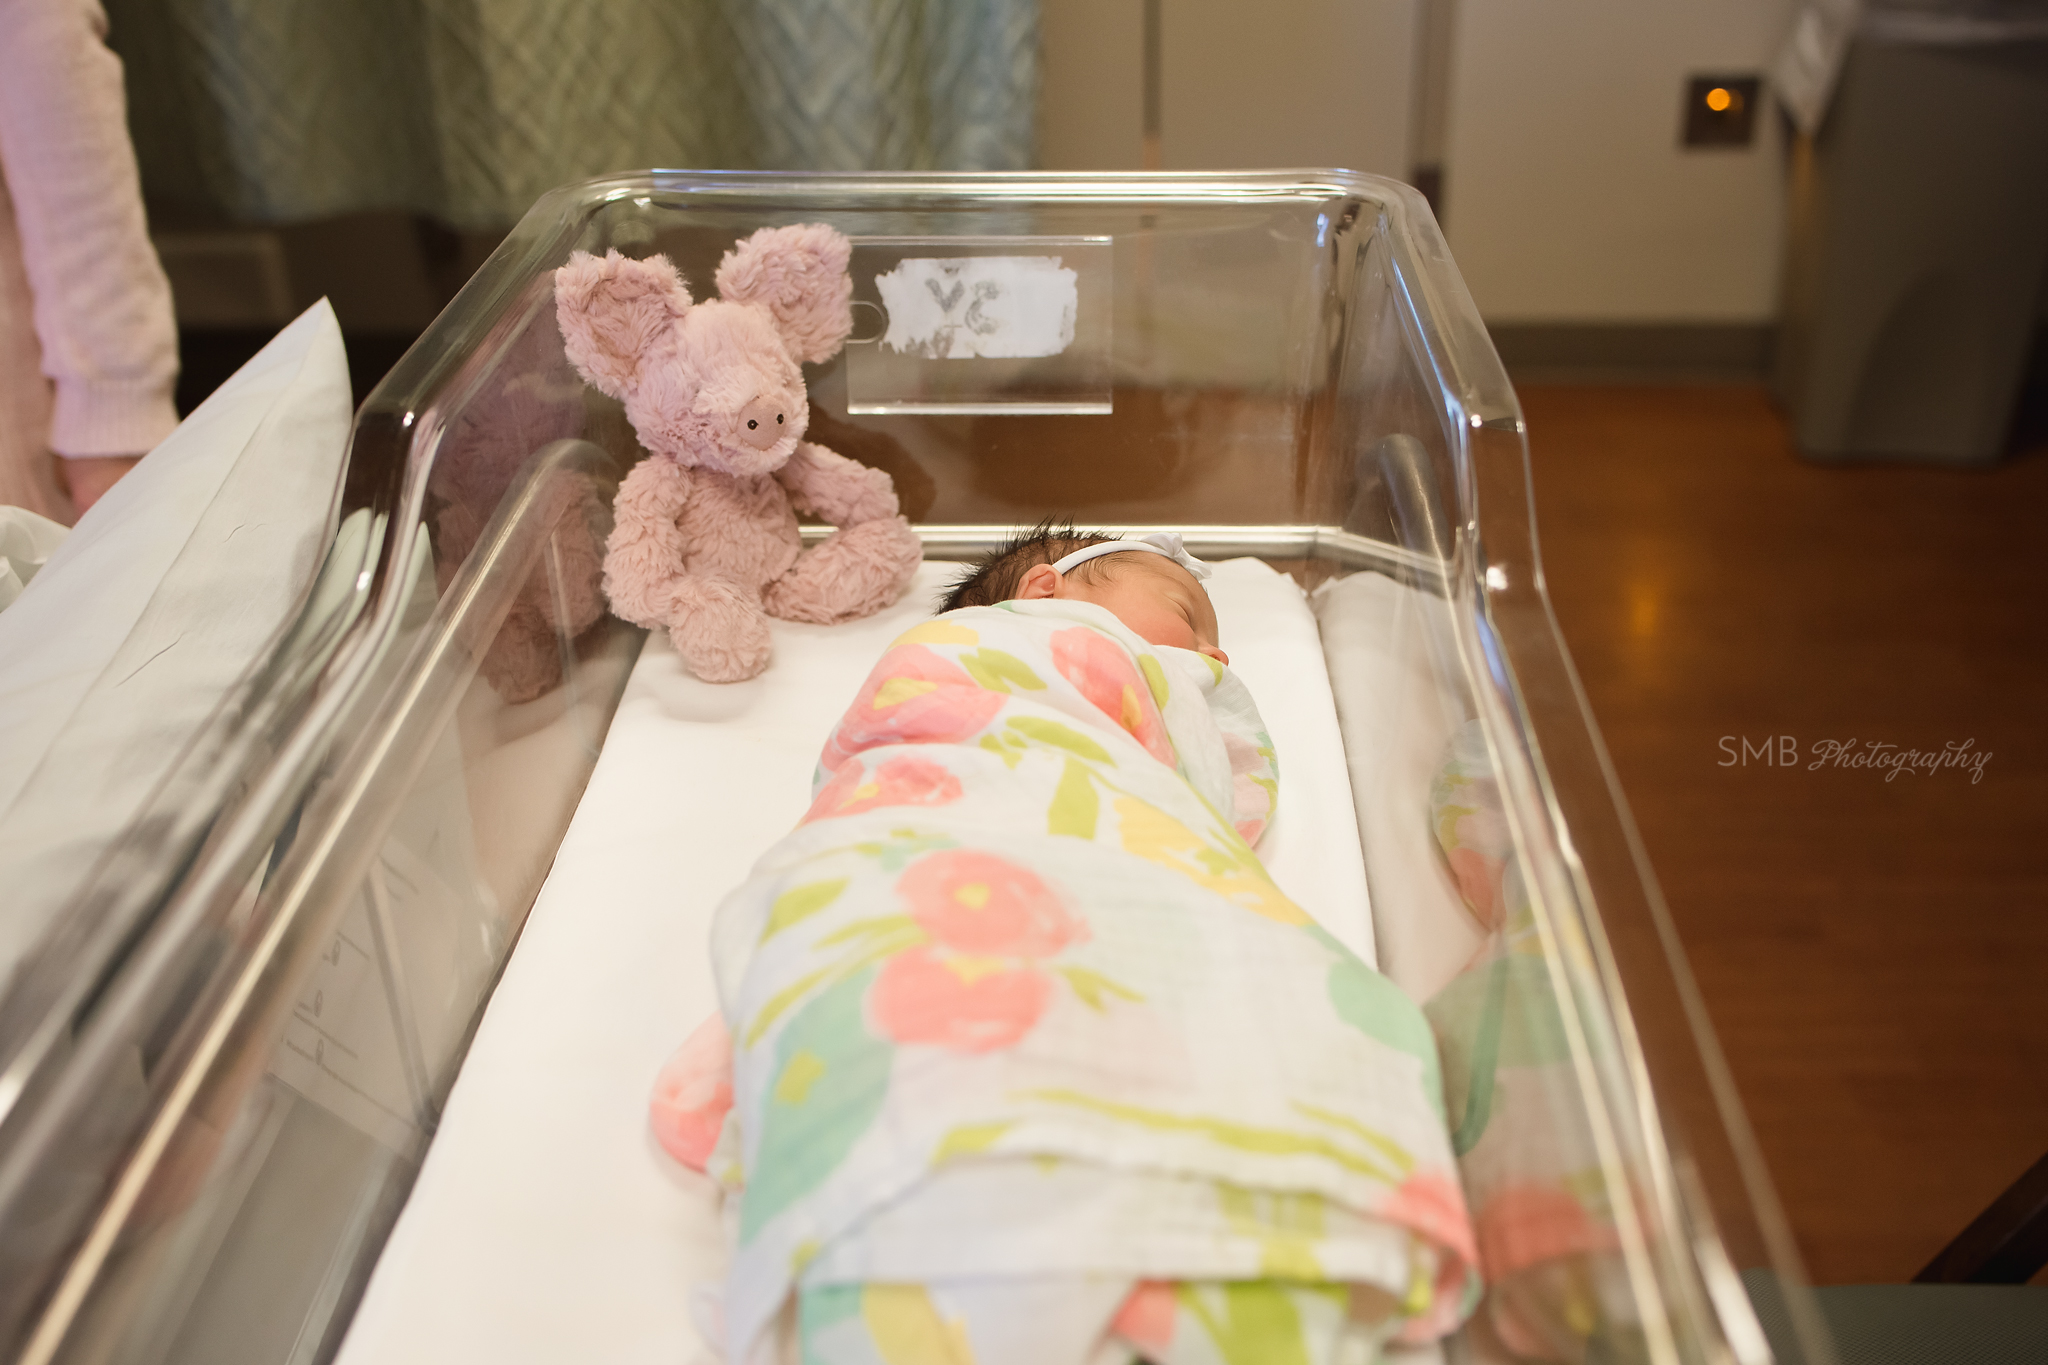 Newborn baby girl wrapped in bassinet with stuffed animal